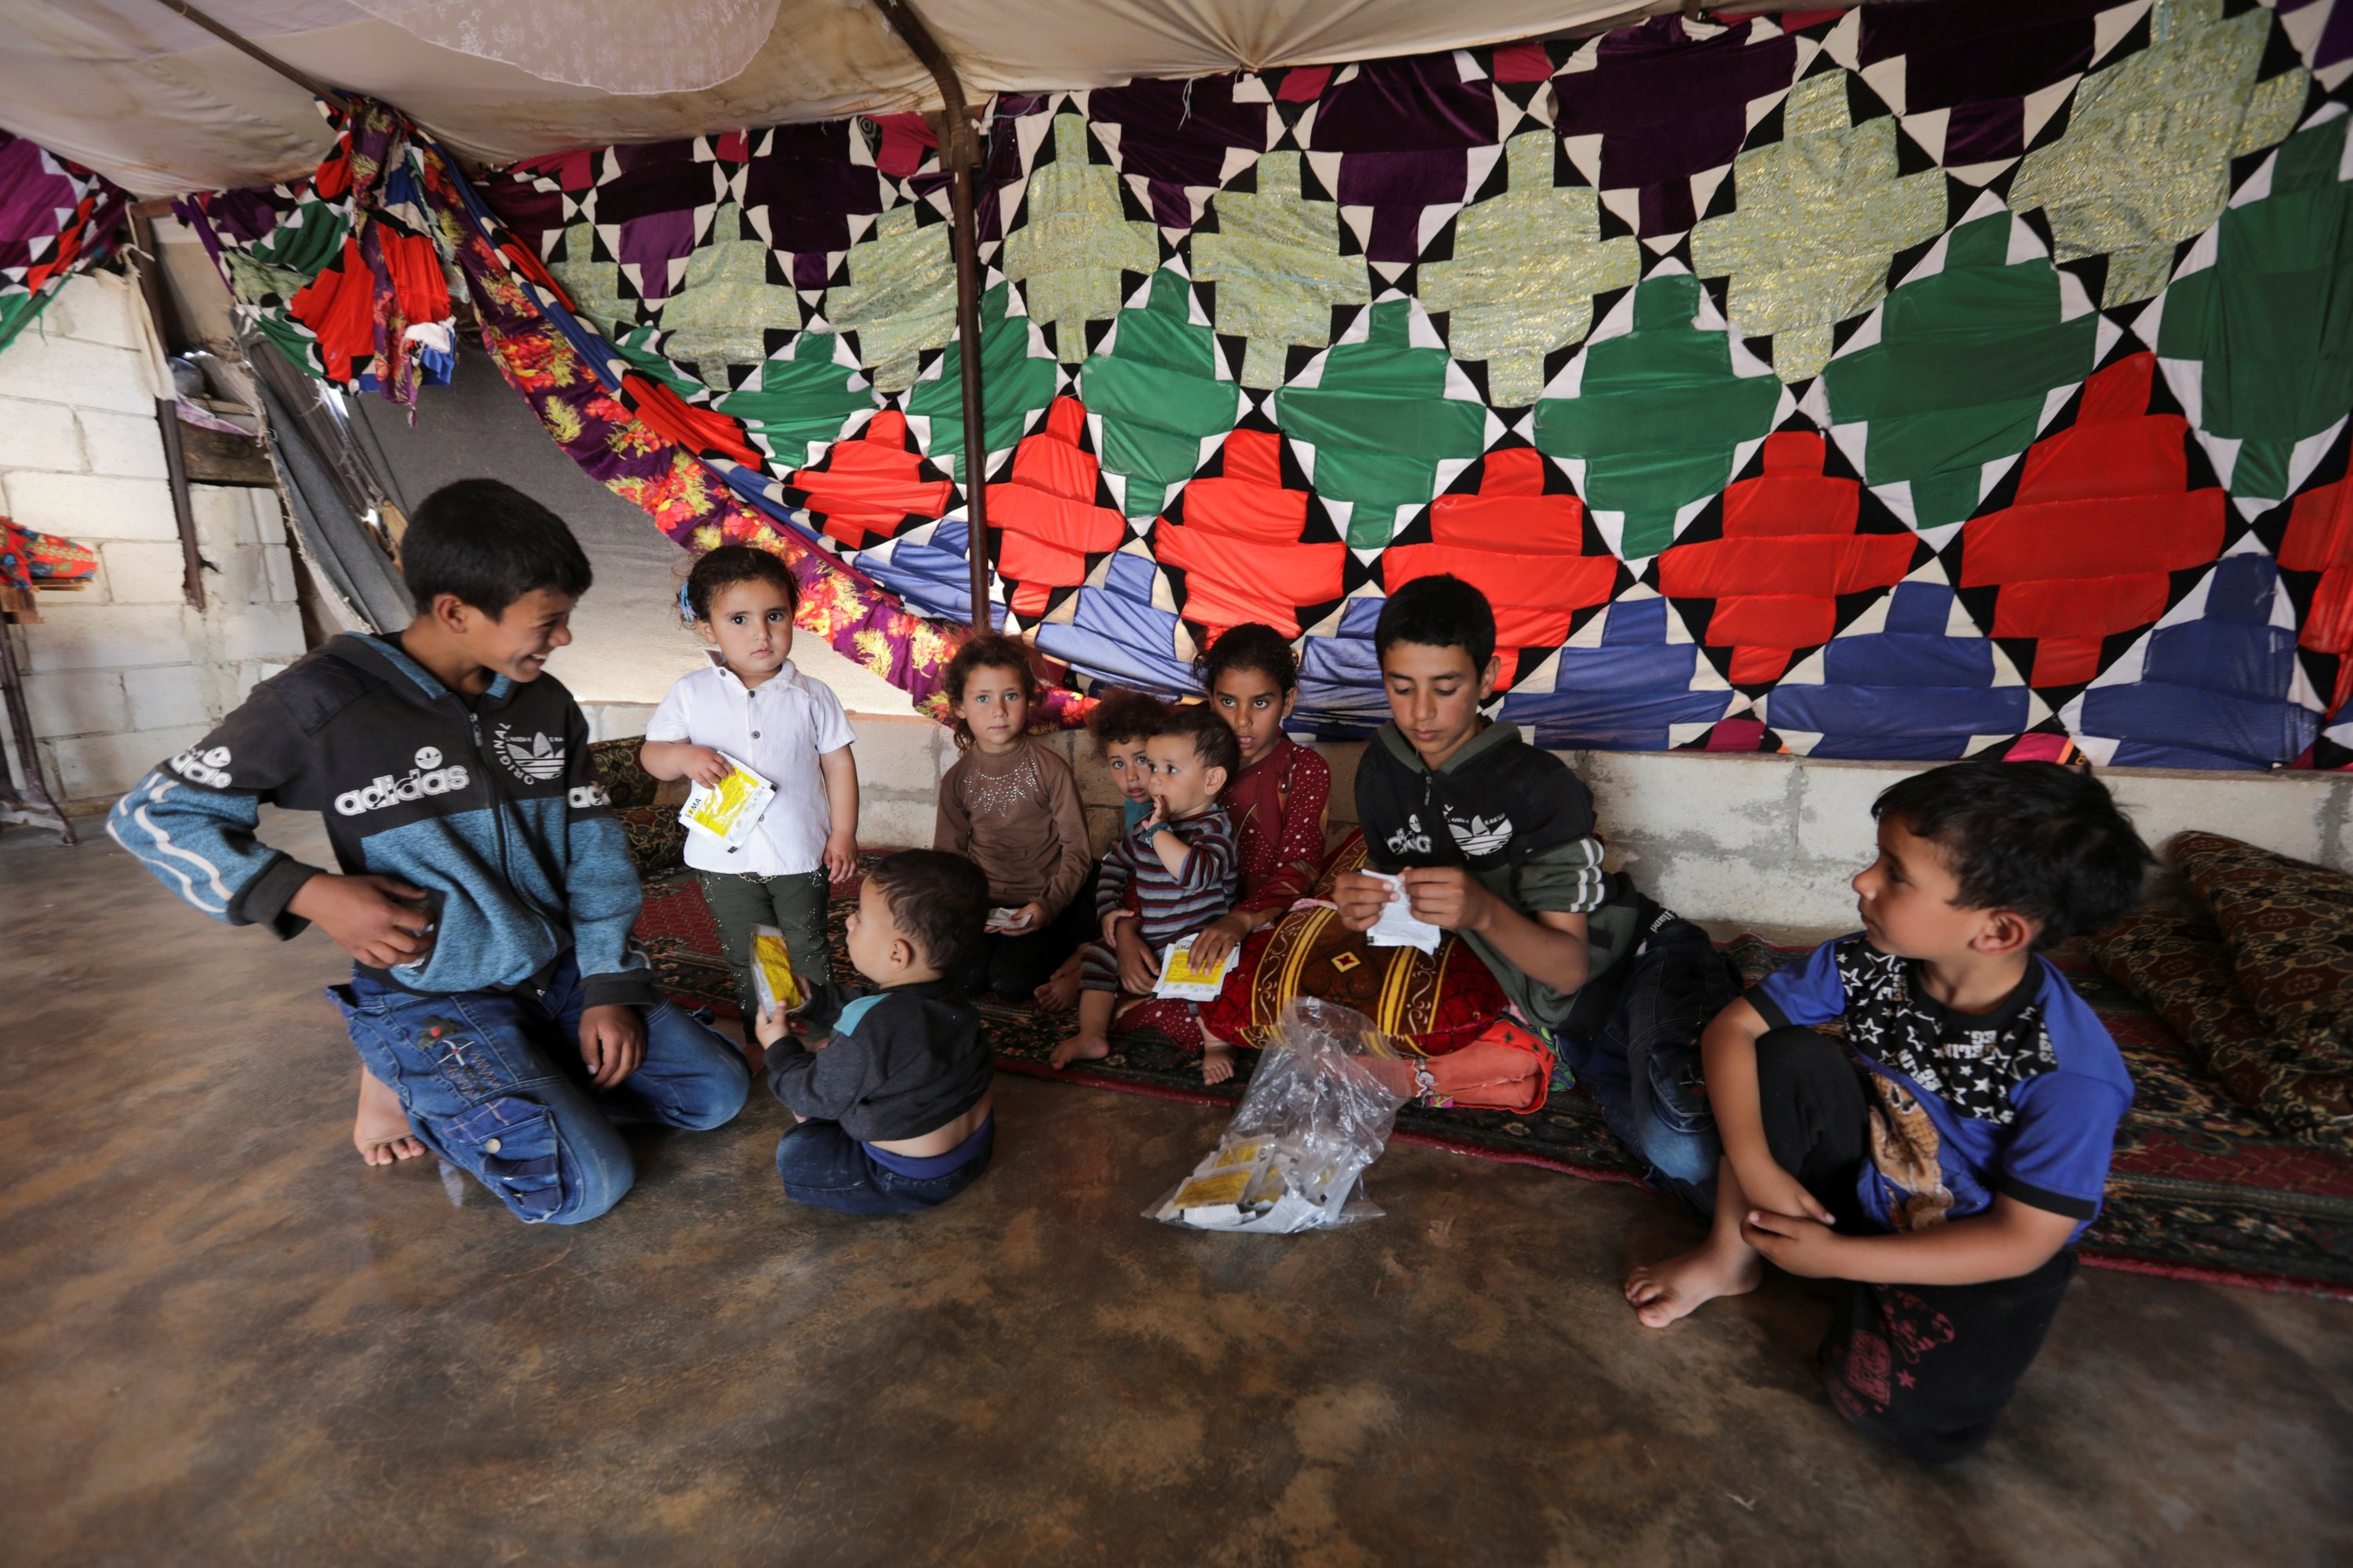 The children of Hussein Mahmoud, an internally displaced farmer, sit together inside a tent in the opposition-held Idlib, Syria, June 9, 2021. (Reuters Photo)